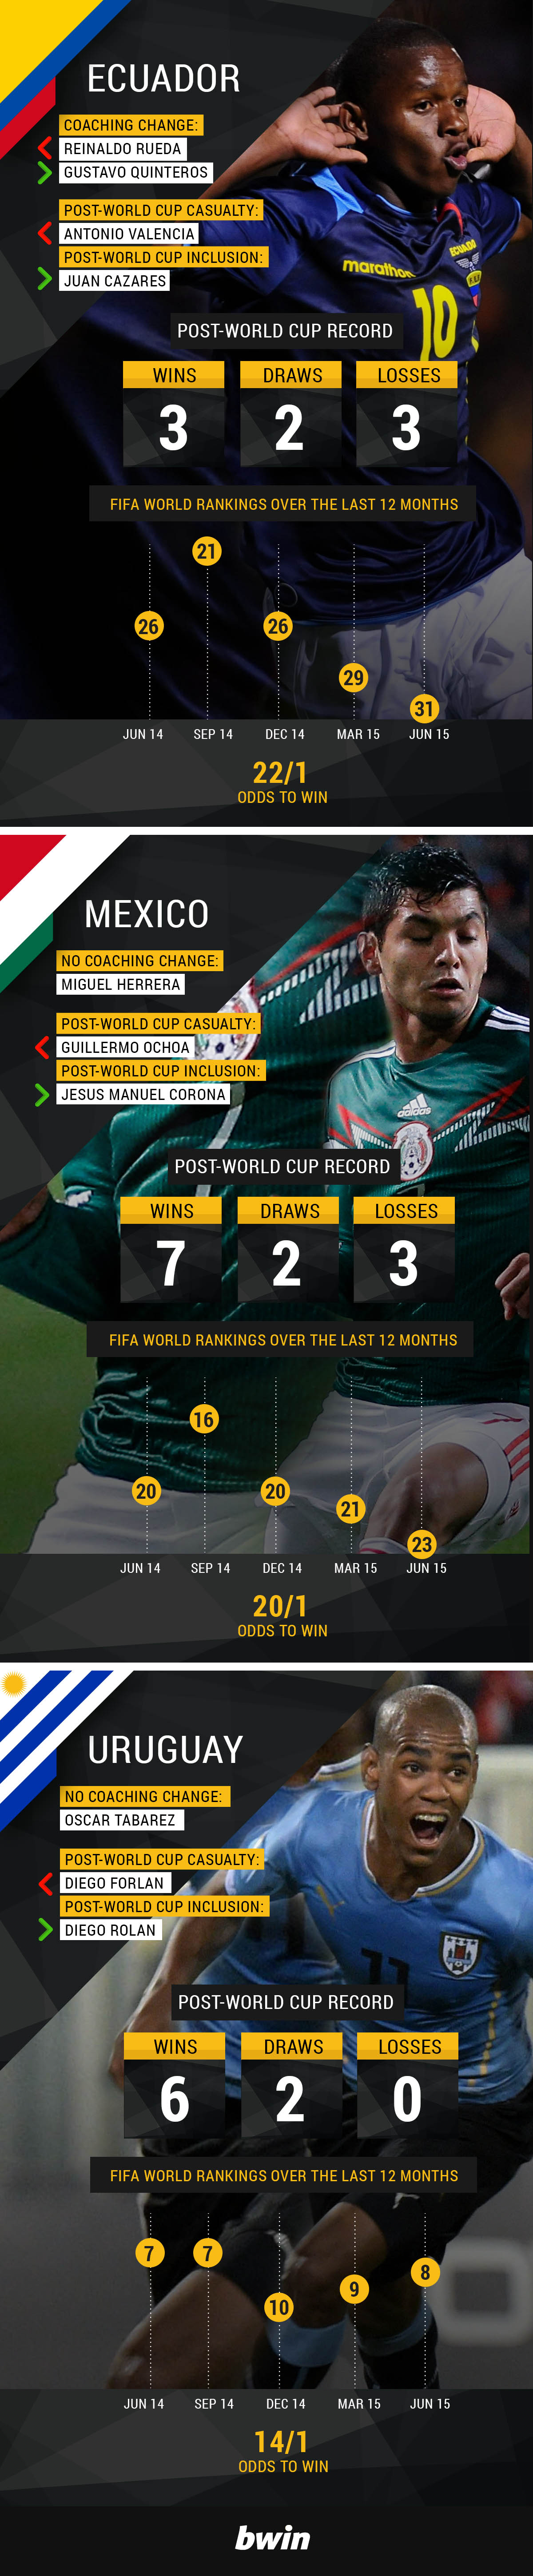 Copa America 2015 Infographic Part Three